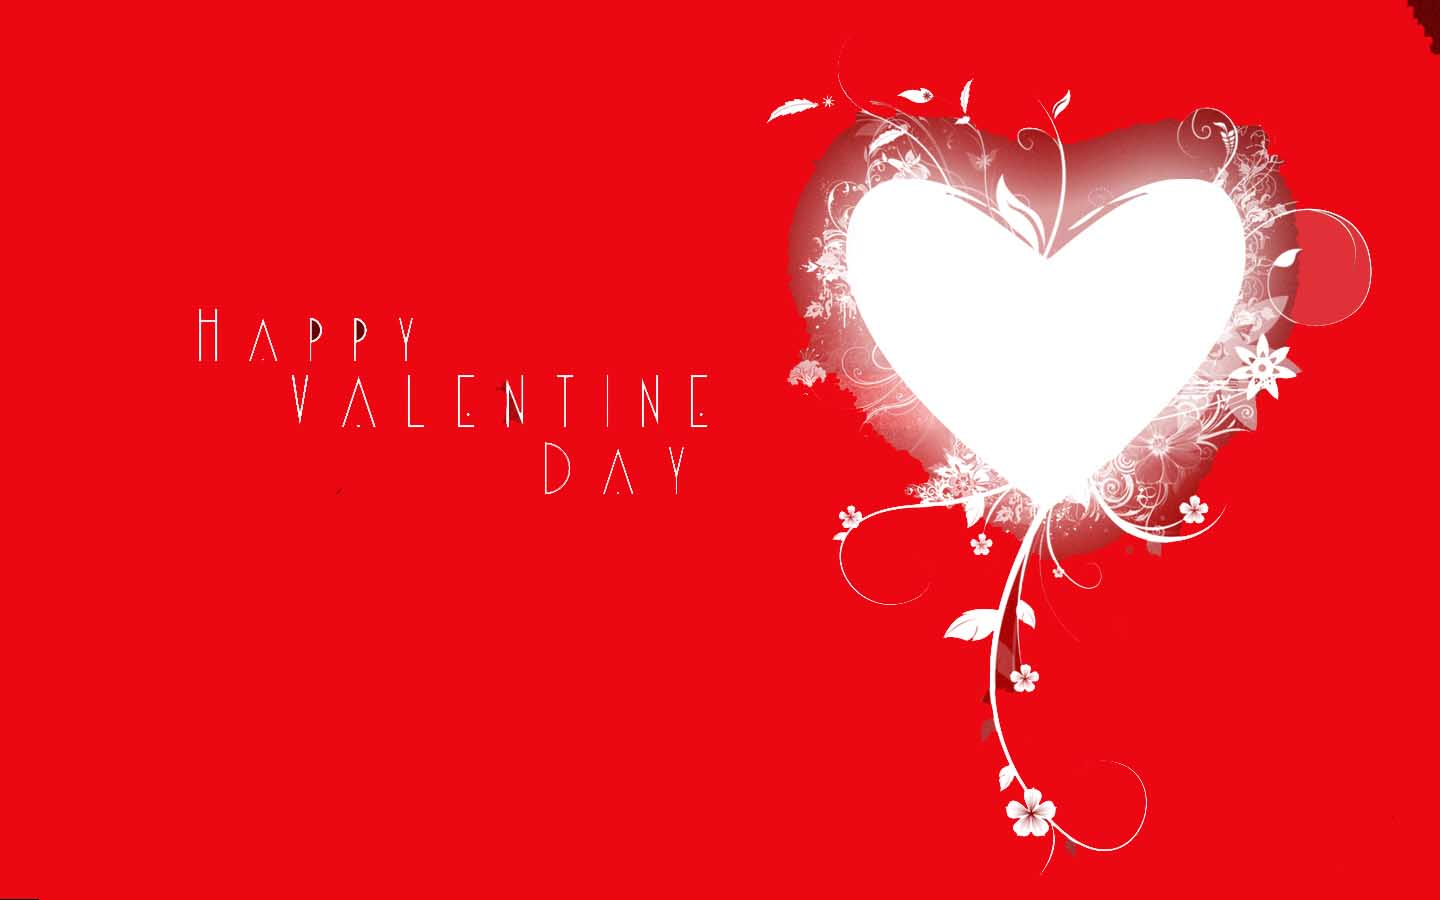 valentines day hd wallpapers hd wallpapers